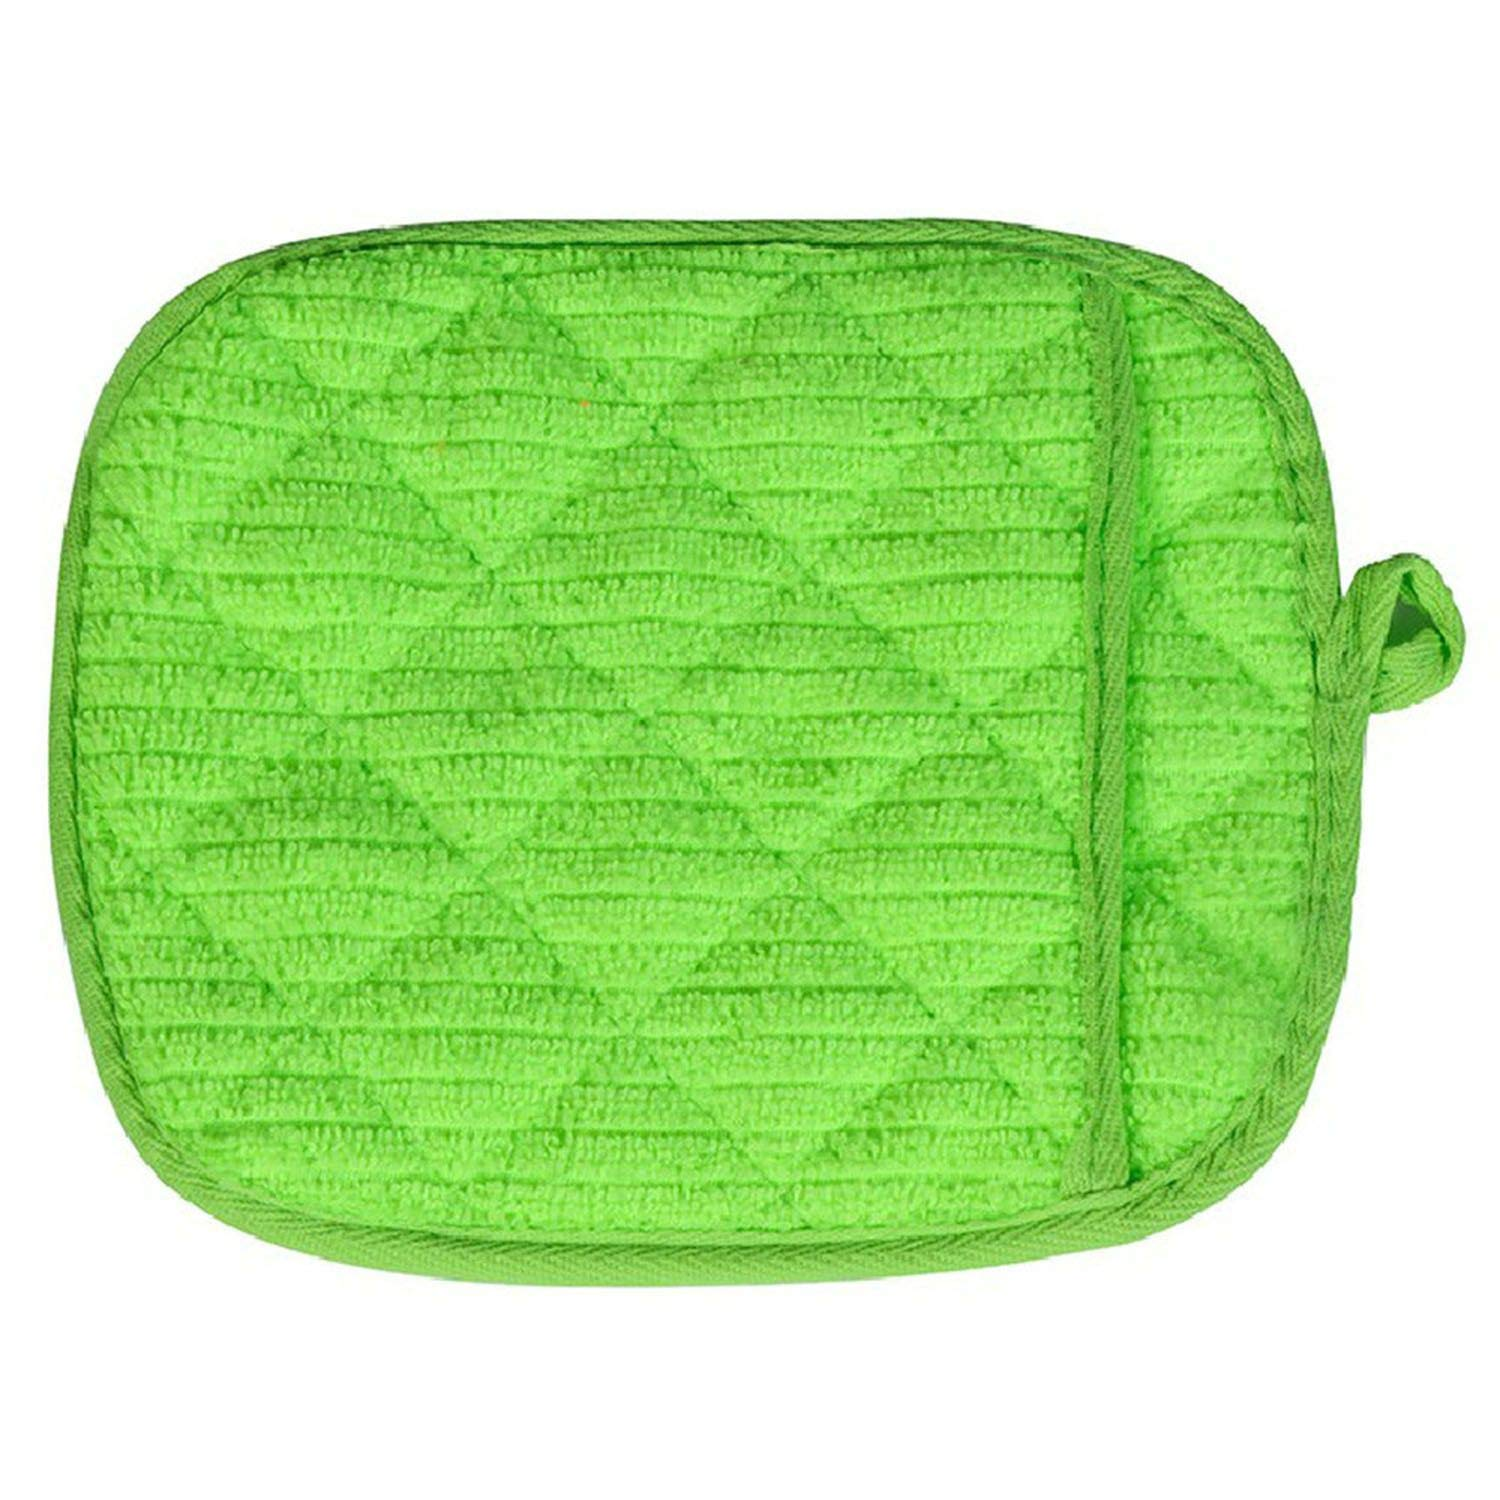 start-imagine Oven Mitts 1 Pcs Cute Kitchen Supplies Cotton Thick Microwave Oven Gloves High-Temperature Insulation Gloves,Green